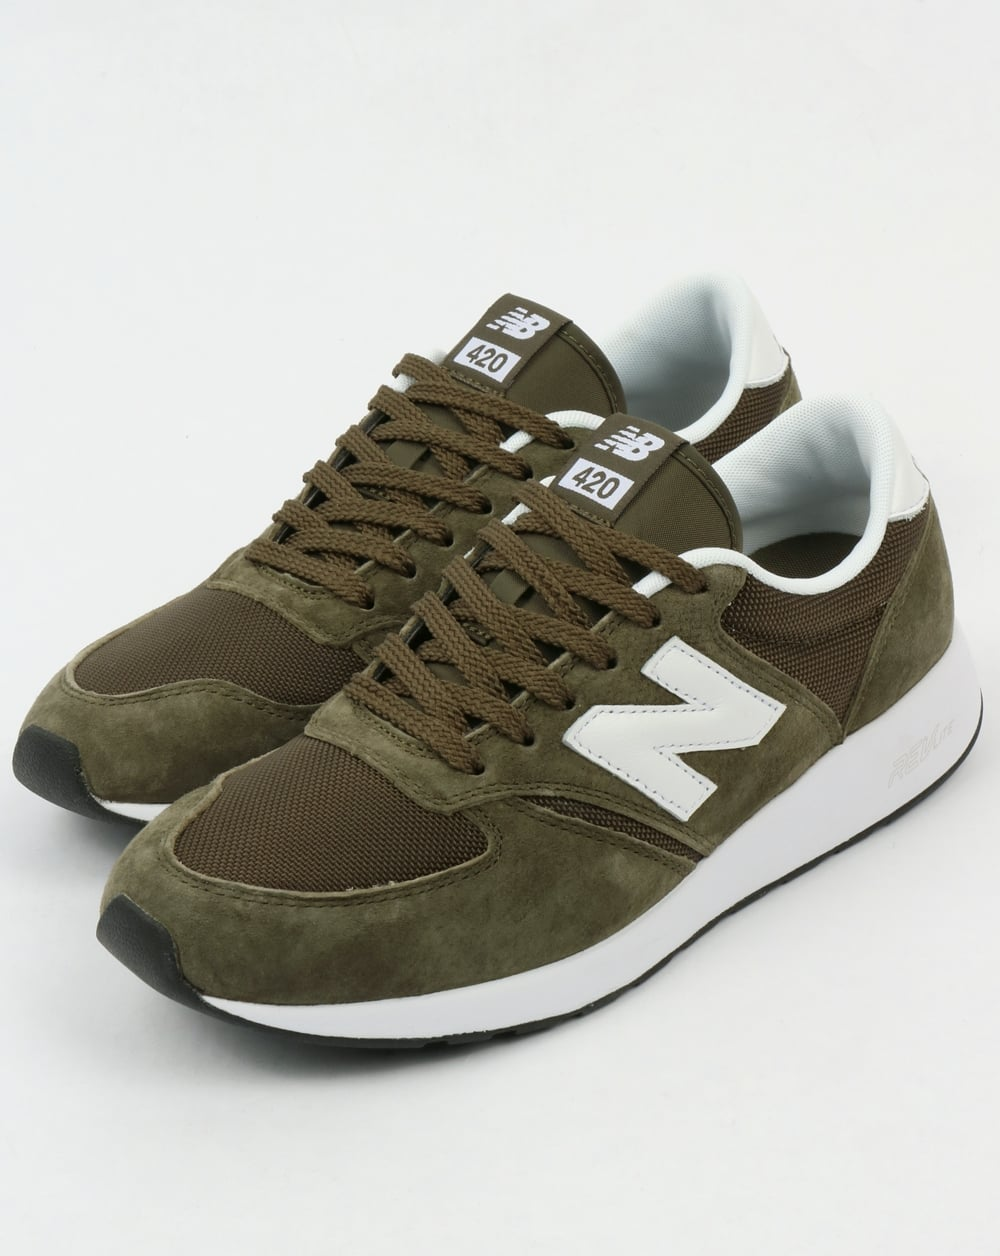 New Balance 420 Re-Engineered Trainers Olive Green,shoes,running,70s